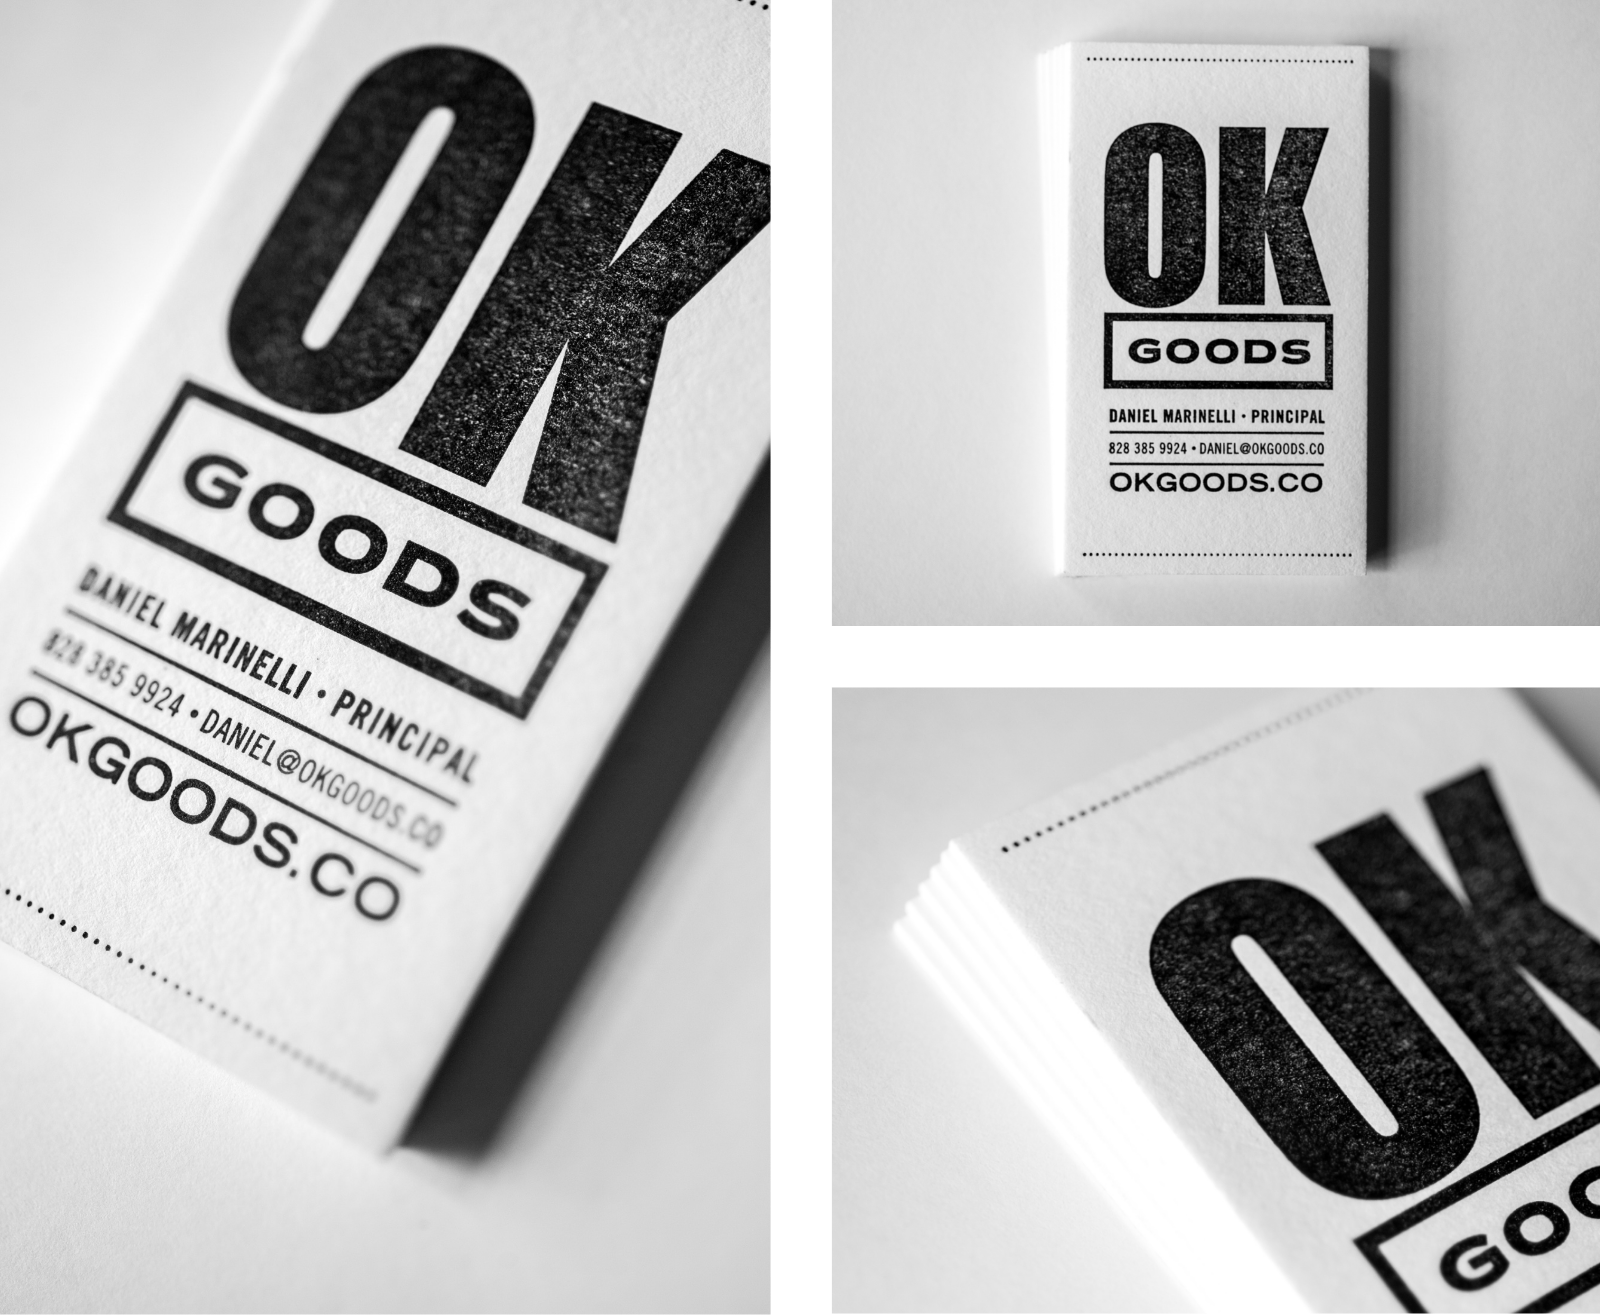 ok goods business cards web